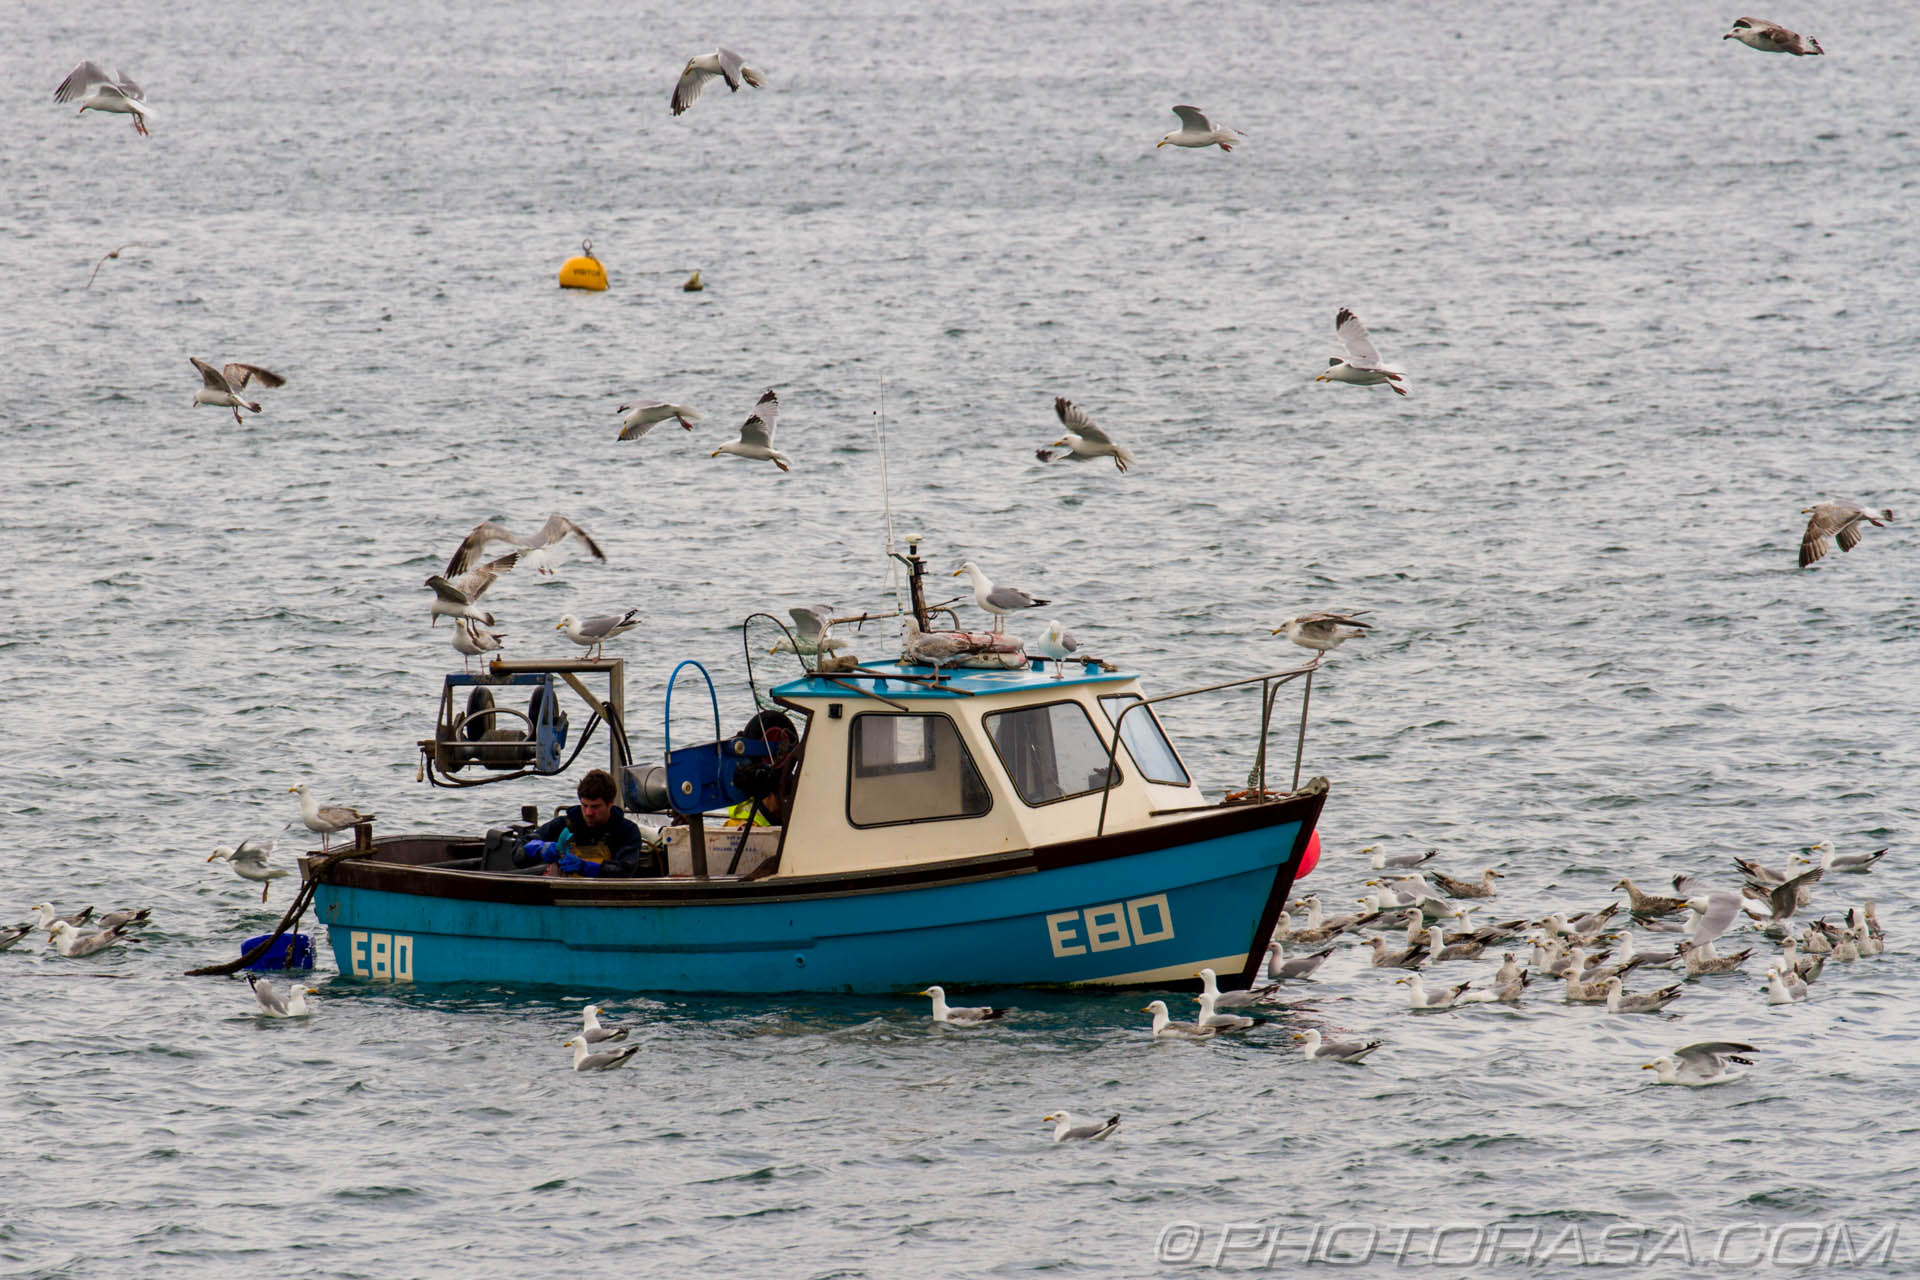 [Jeu] Suite d'images !  - Page 6 Fishing-boat-surrounded-by-seagulls